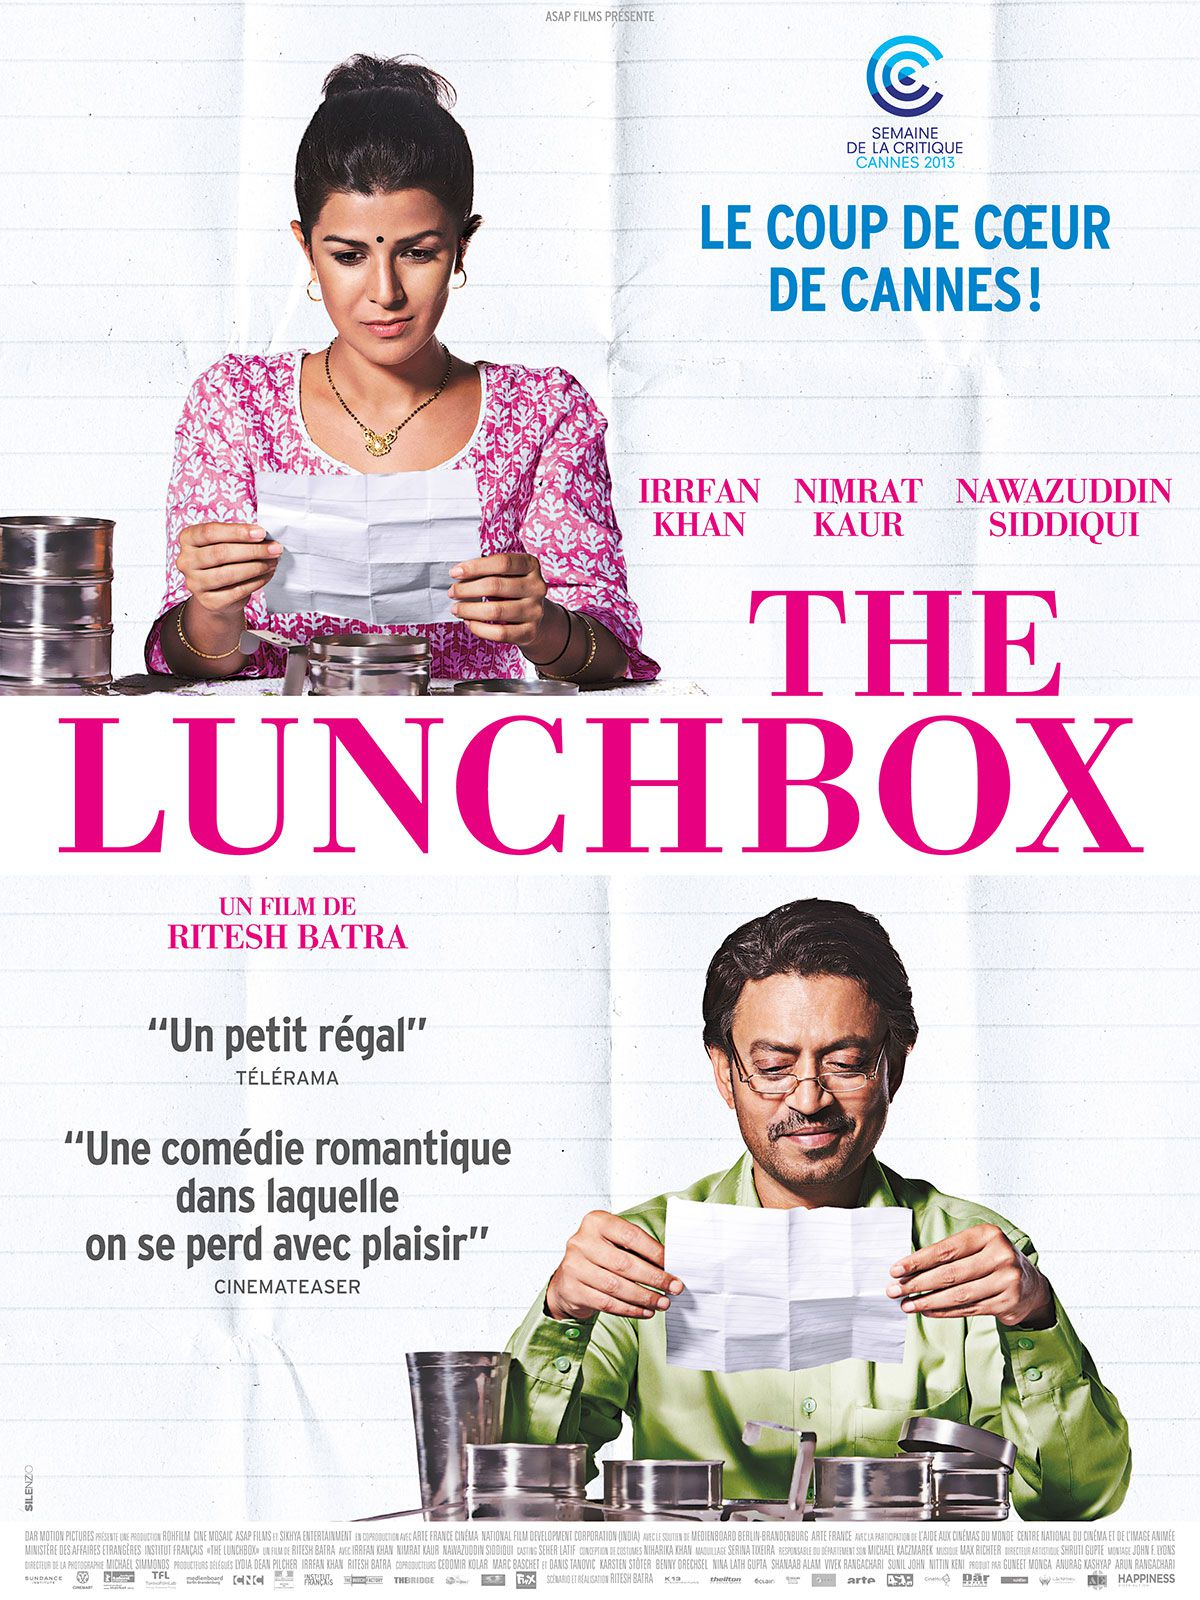 The Lunchbox - Film (2013)